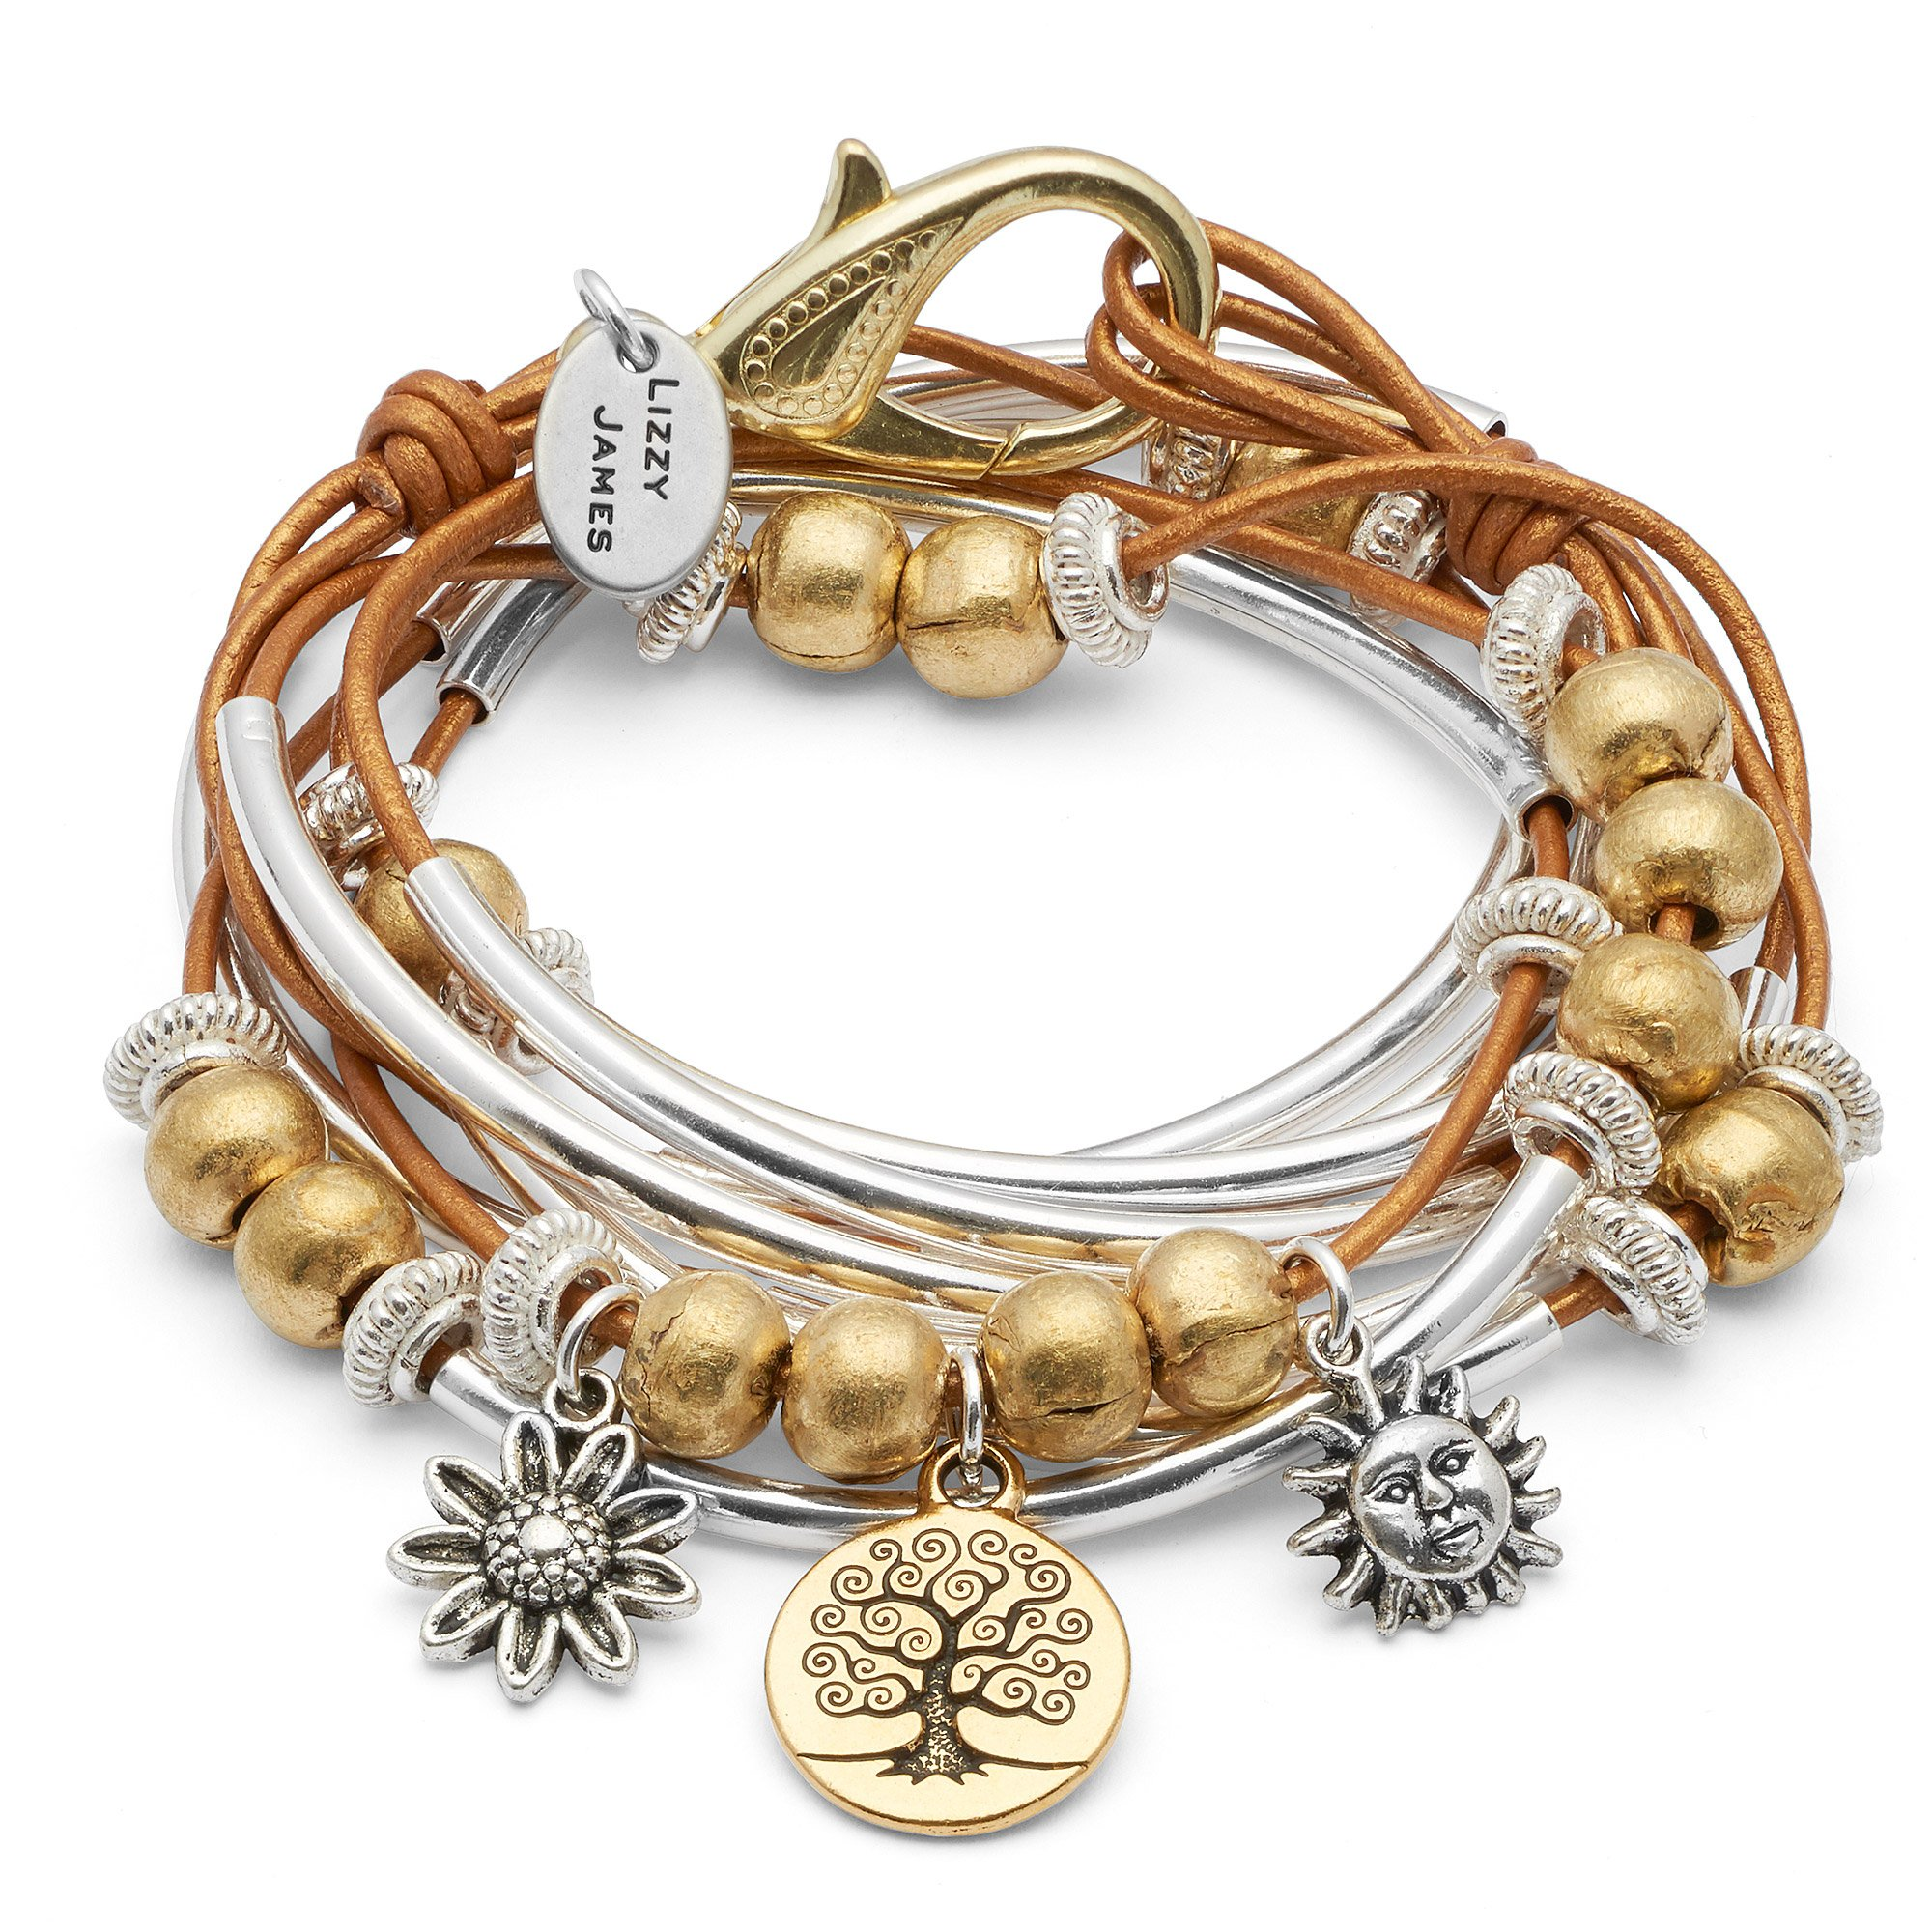 Boho with Gold Tree of Life Charm Trio Silverplate Small Bracelet Necklace with Metallic Golden Sun Leather Wrap by Lizzy James